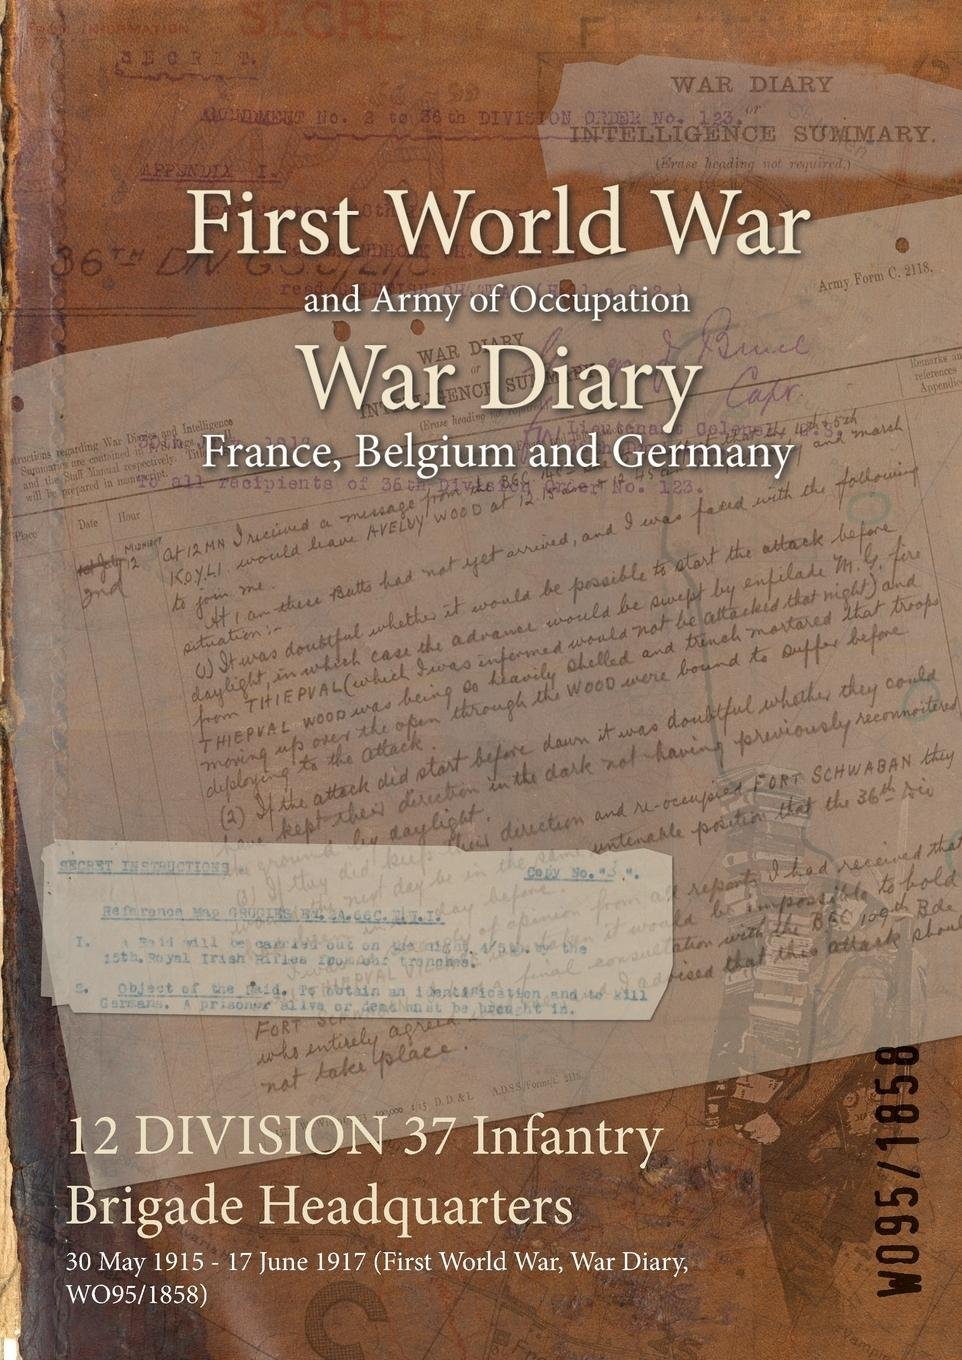 12 Division 37 Infantry Brigade Headquarters: 30 May 1915 - 17 June 1917 (First World War, War Diary, Wo95/1858) PDF